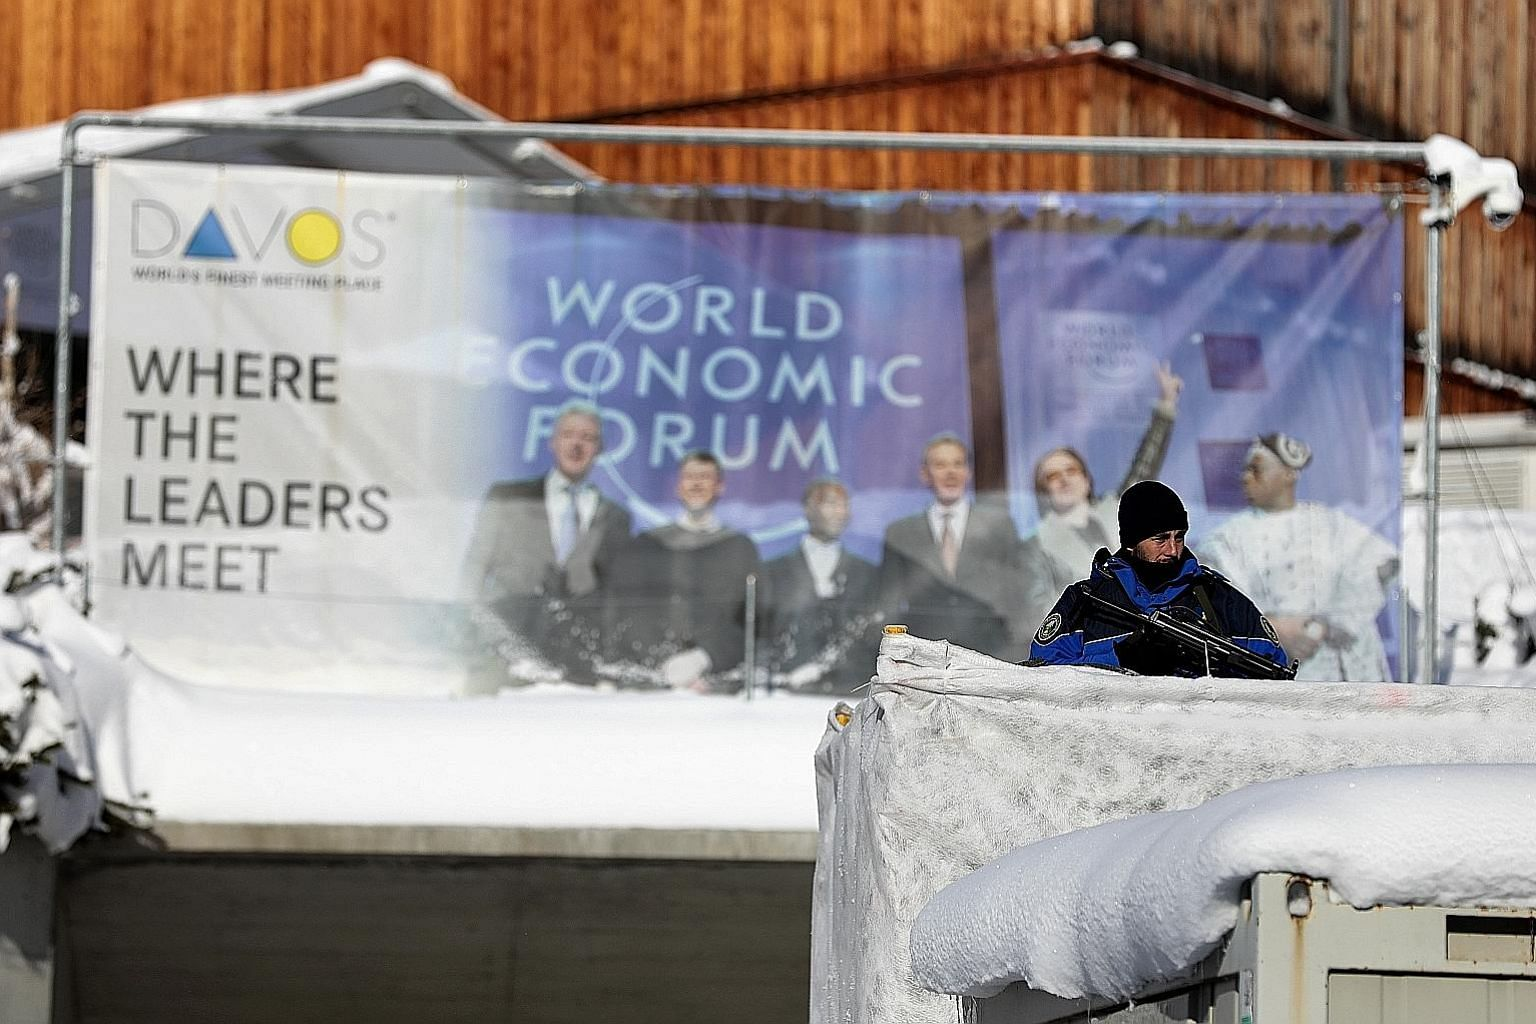 "At the World Economic Forum in Davos last week, founder and executive chairman Klaus Schwab noted that apart from sharing wealth more fairly, steps were also needed to ""reinvigorate economic growth""."